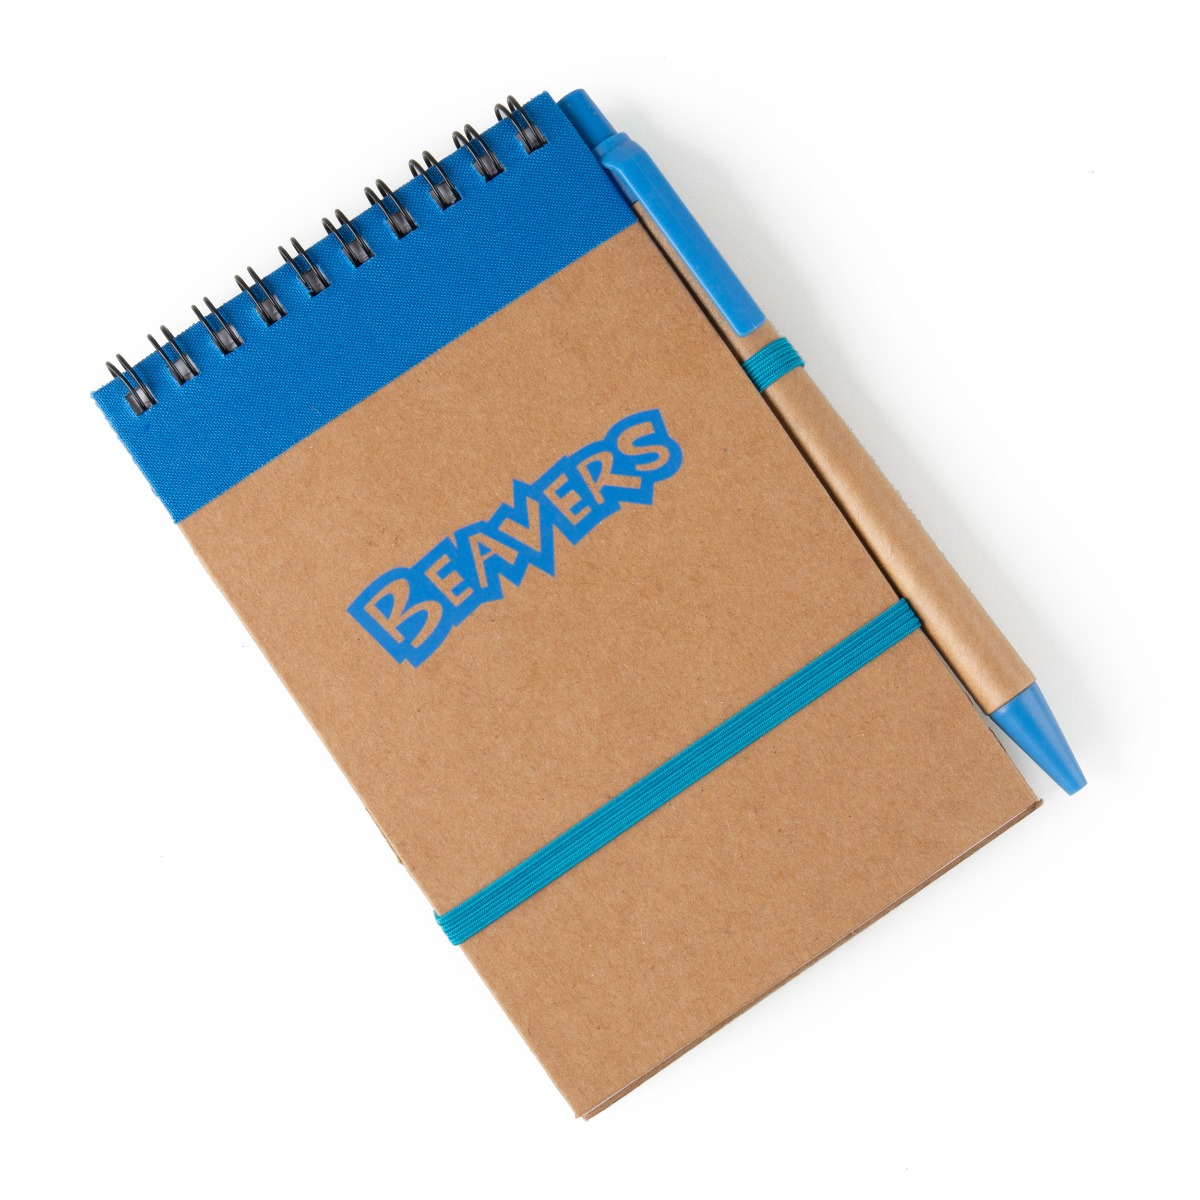 BEAVER ECO NOTEBOOK AND PEN OFFICIAL BEAVERS UNIFORM NEW